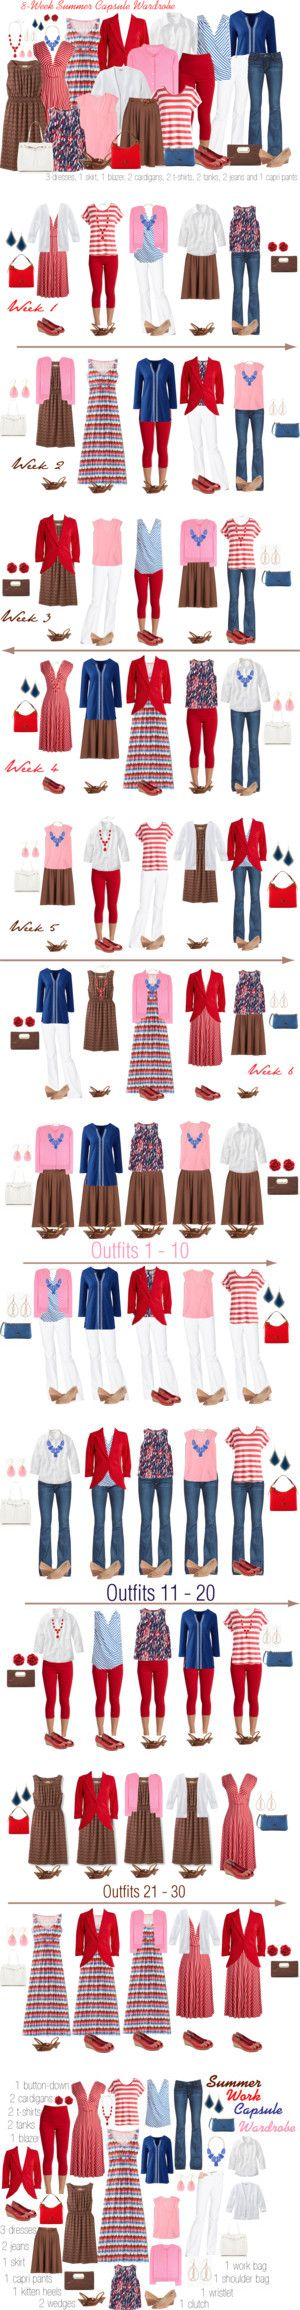 Summer Work Capsule Wardrobe: Pink, Brown, Red & Blue by kristin727 on Polyvore featuring мода, L.L.Bean, Lands' End, Talbots, Paige Denim, Miu Miu, J.Crew, Boden, Dooney & Bourke and Kate Spade